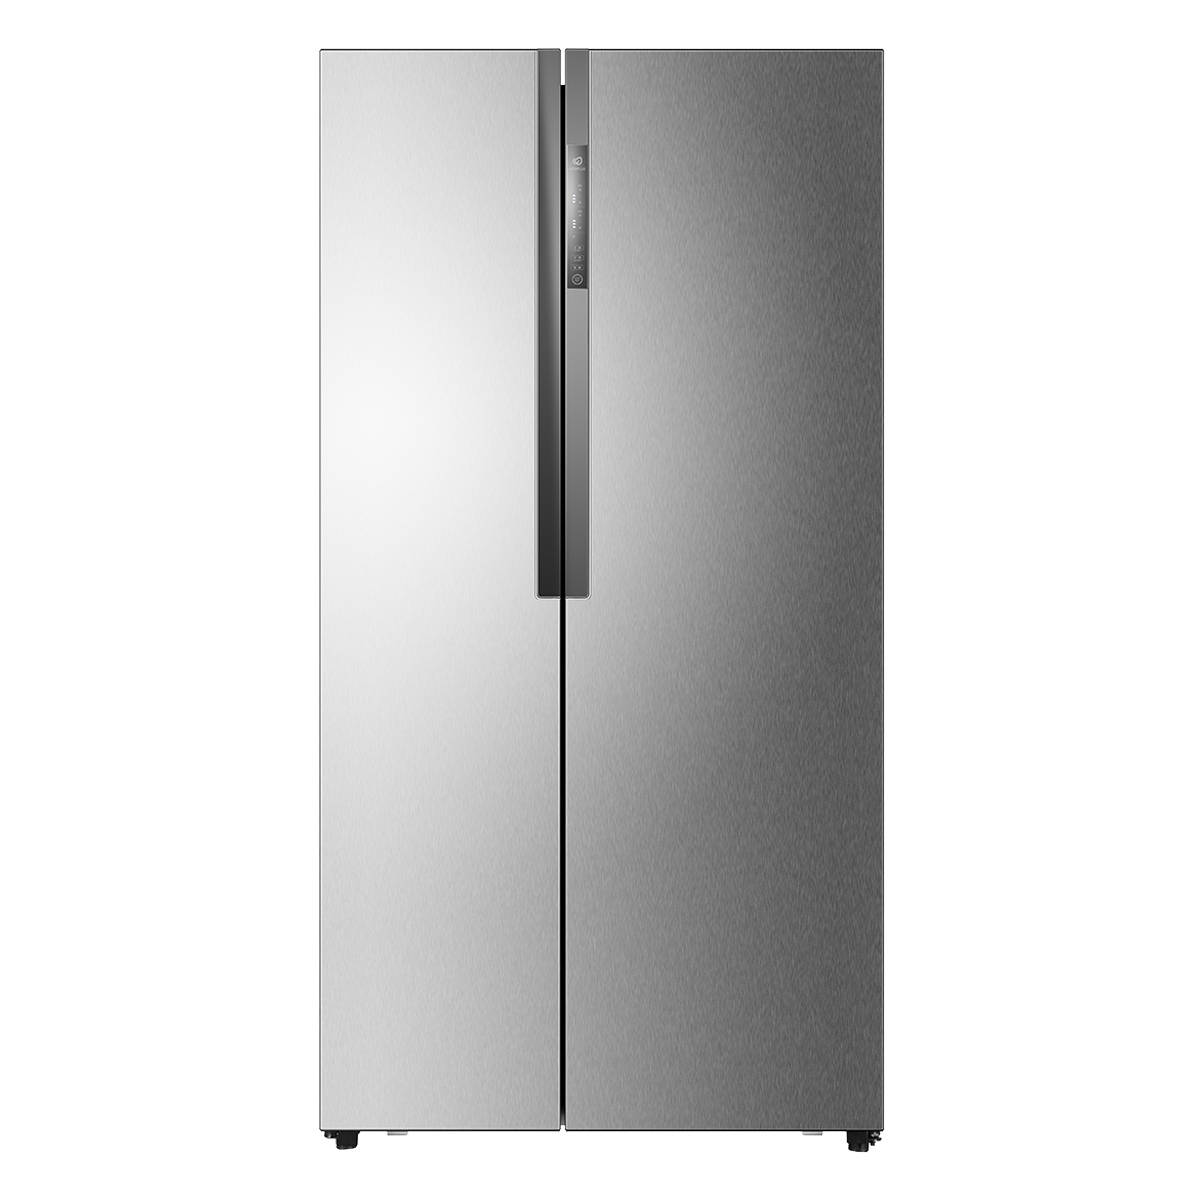 Haier HRF-618SS 565 L Side by Side Refrigerator Image